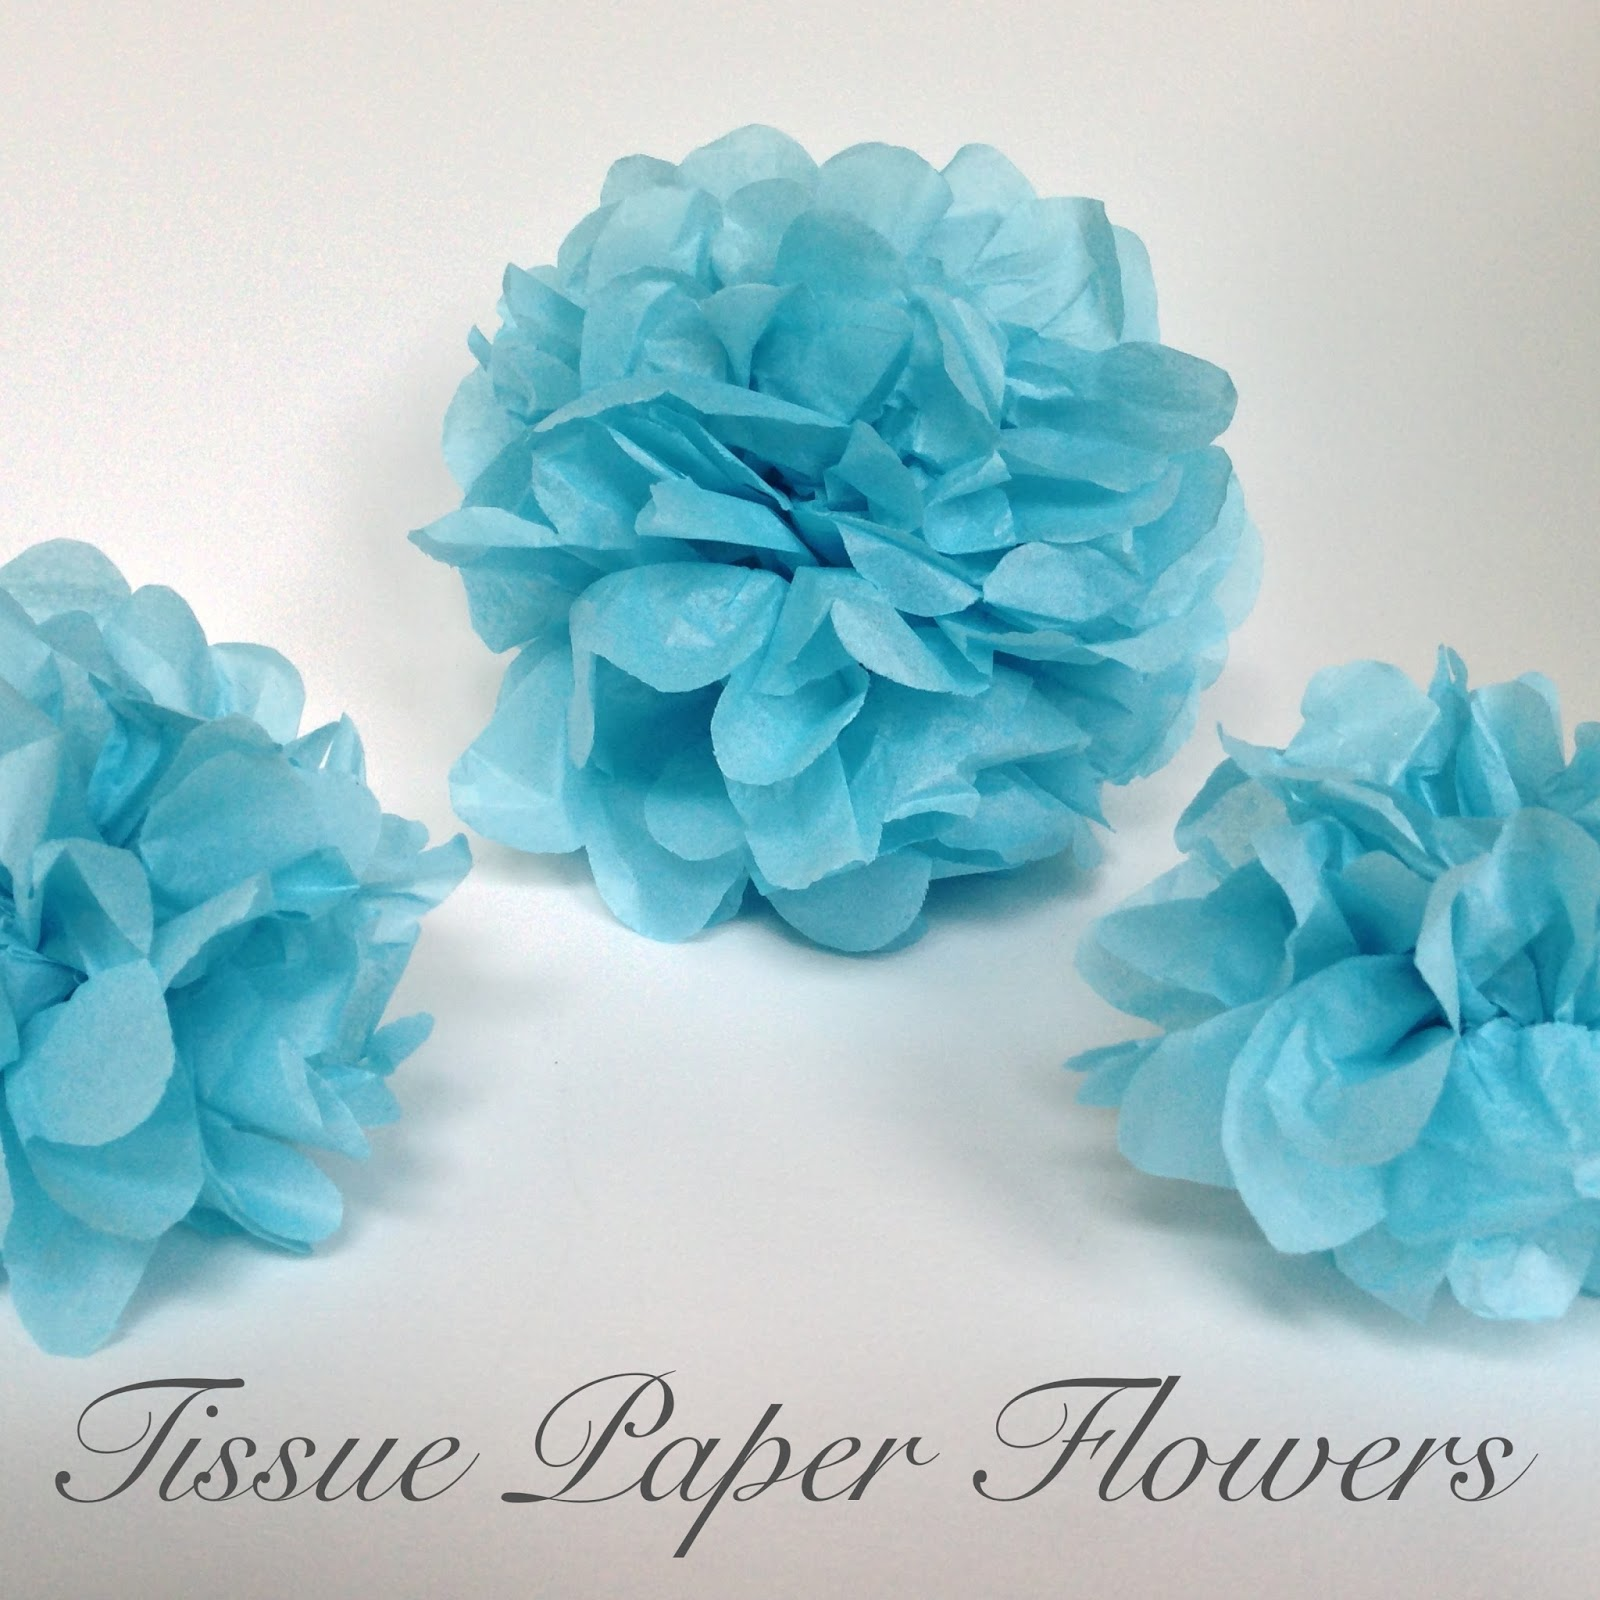 Tissue paper flowers tutorial tea crafting they are really very simple to make you will need mightylinksfo